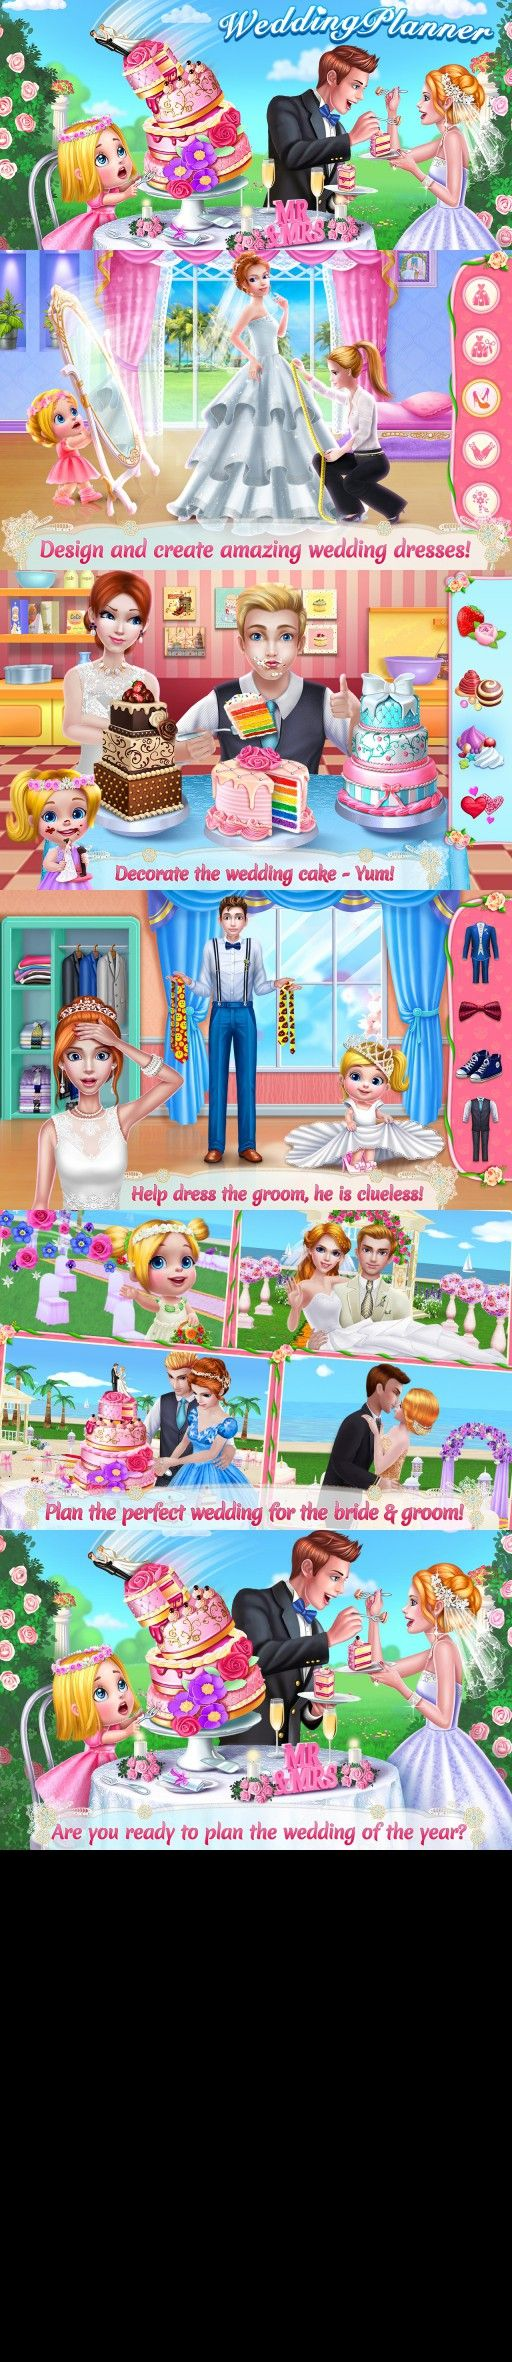 wedding planner dress up makeup cake design game for girls